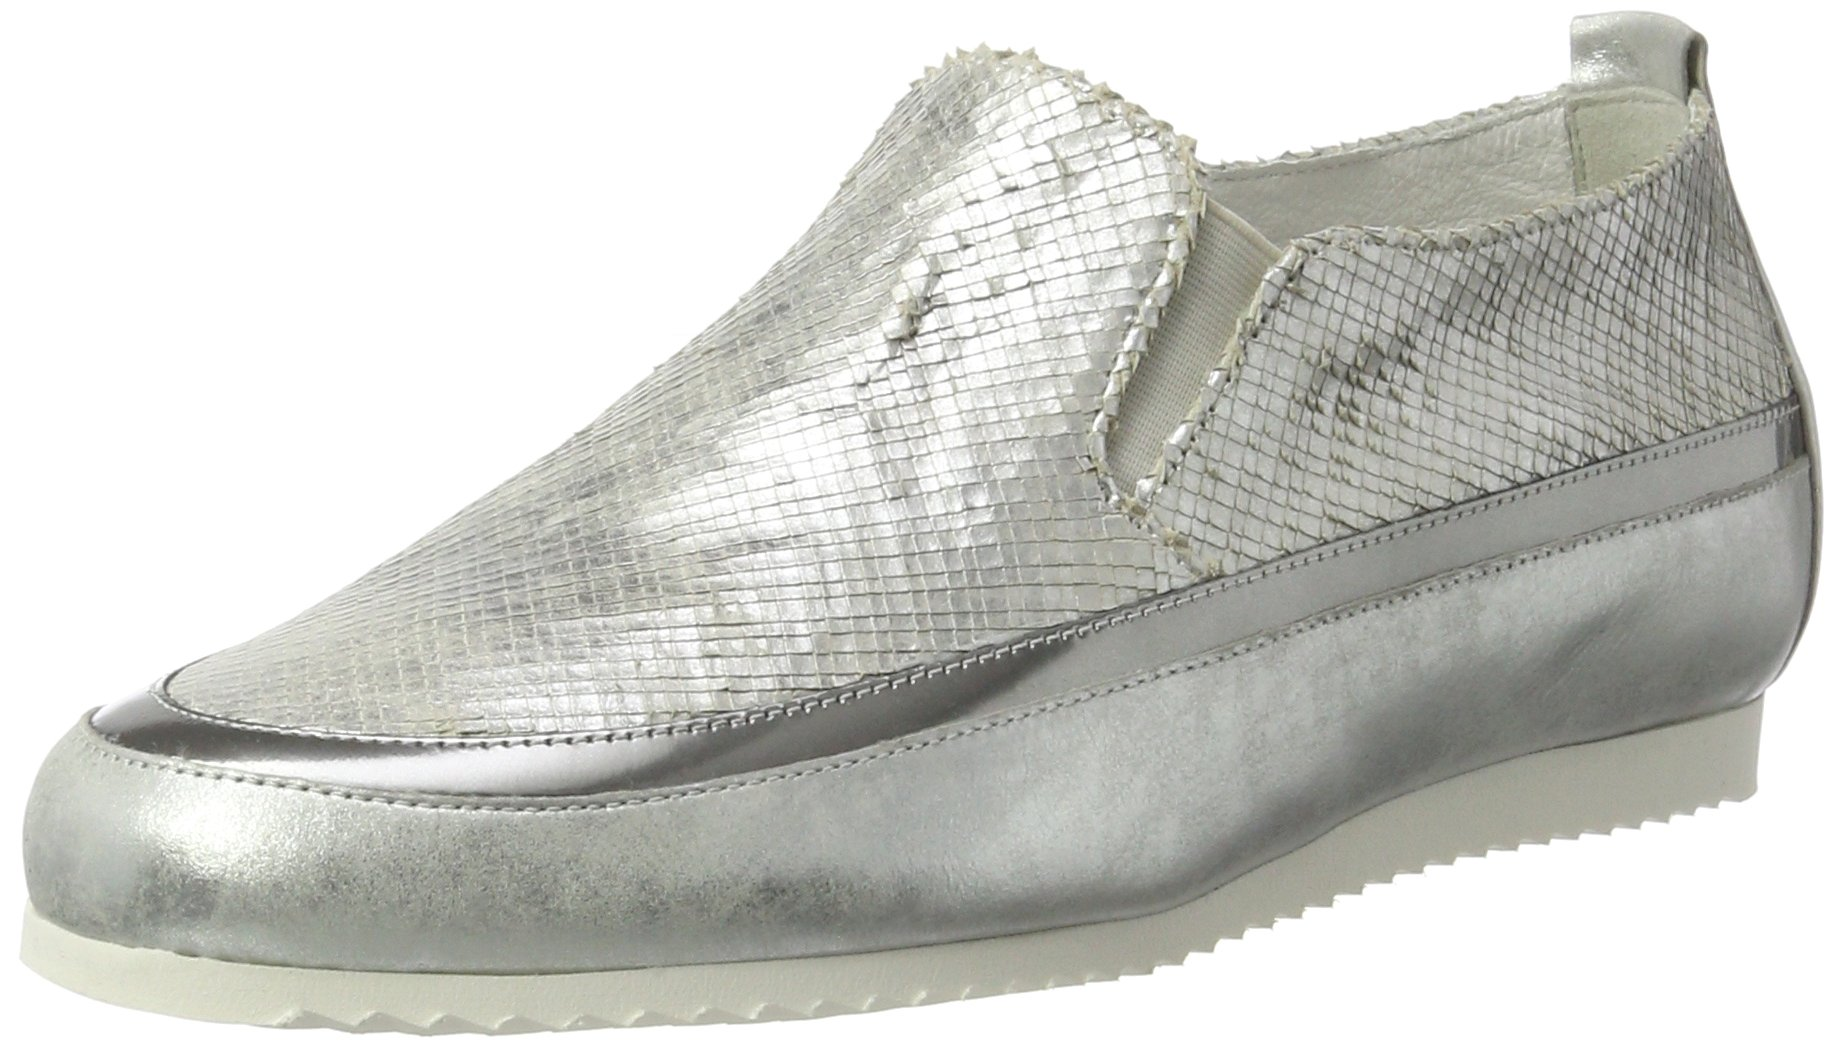 7600Sneakers Eu 10 Högl 2336 3 FemmeArgentsilber760038 Basses 5 gY6vybfI7m